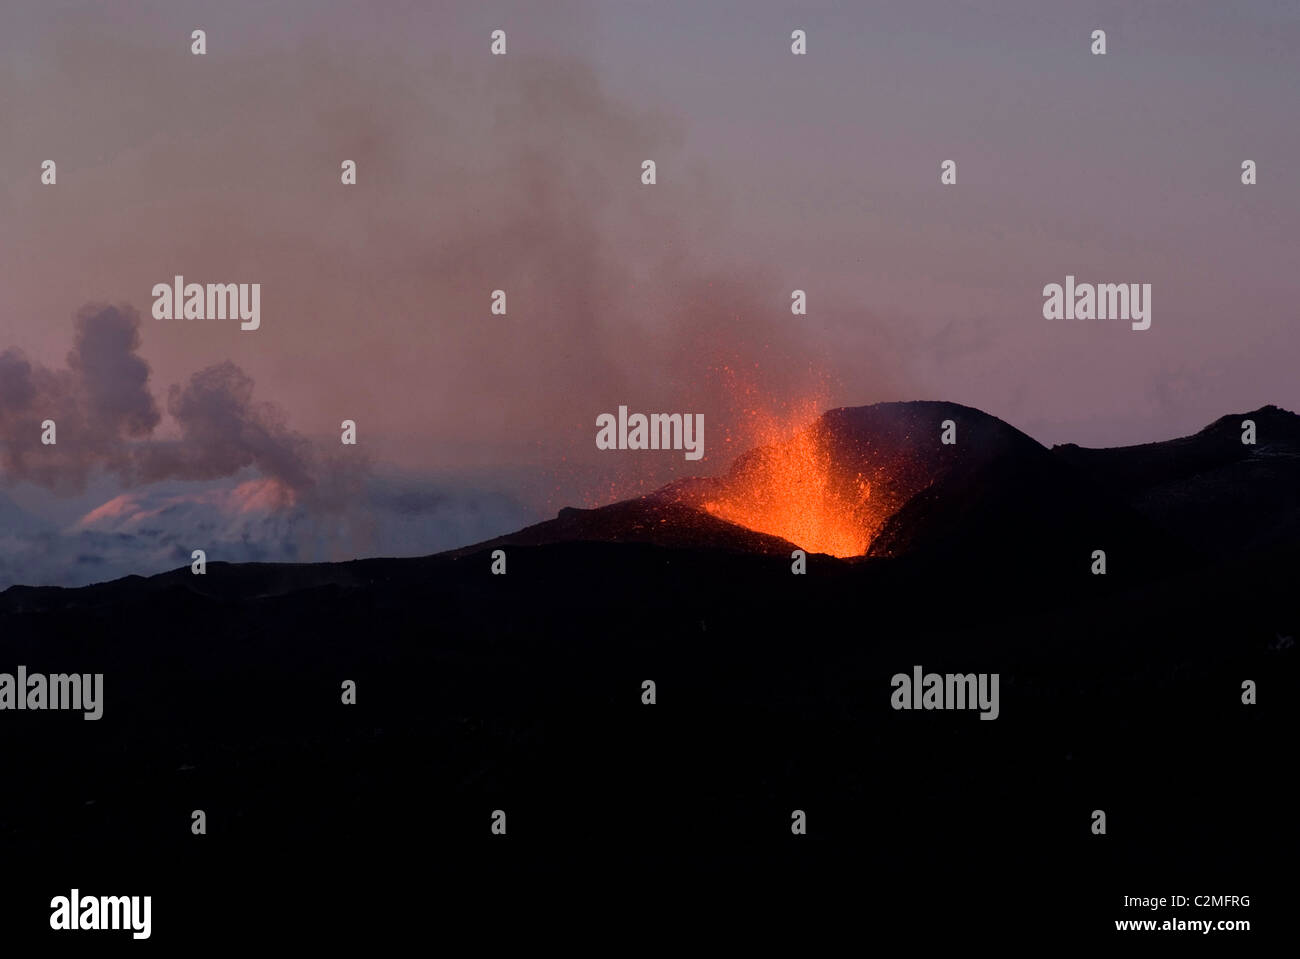 Fountaining lava from Eyjafjallajokull volcano, silhouetted against sunset, Southern Iceland - Stock Image